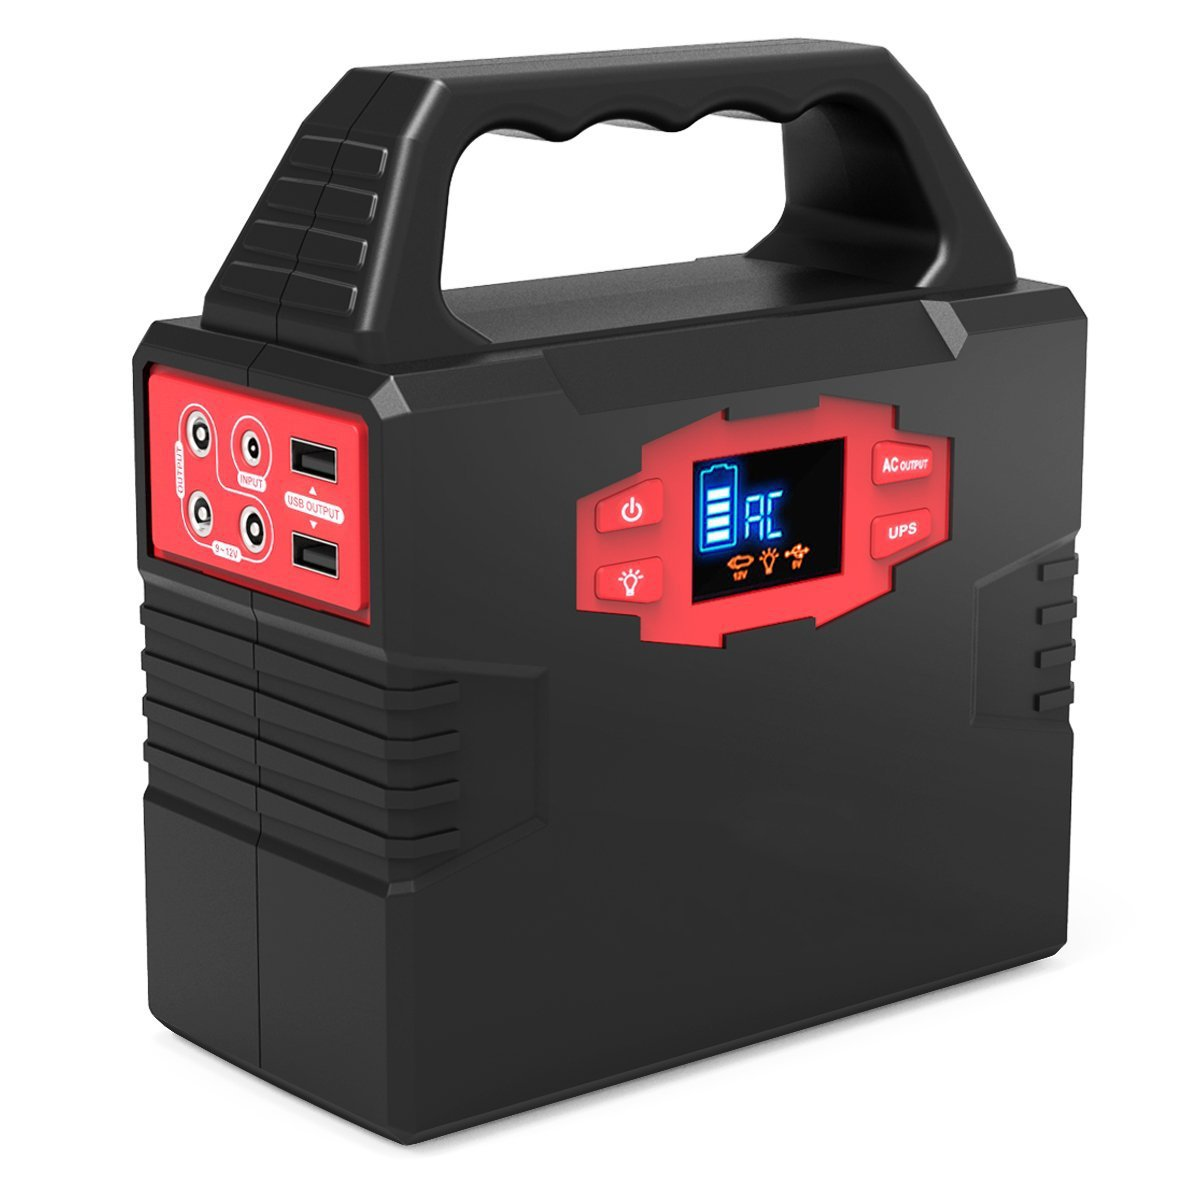 Portable Generator Power Inverter,150Wh Power Station CPAP Battery Pack Outdoor Camping Home Emergency Power Supply,Charged by Solar Panel Wall Outlet Car with Dual 110V AC Outlet, 3 DC 12V Port,2 USB by ISUNPOW